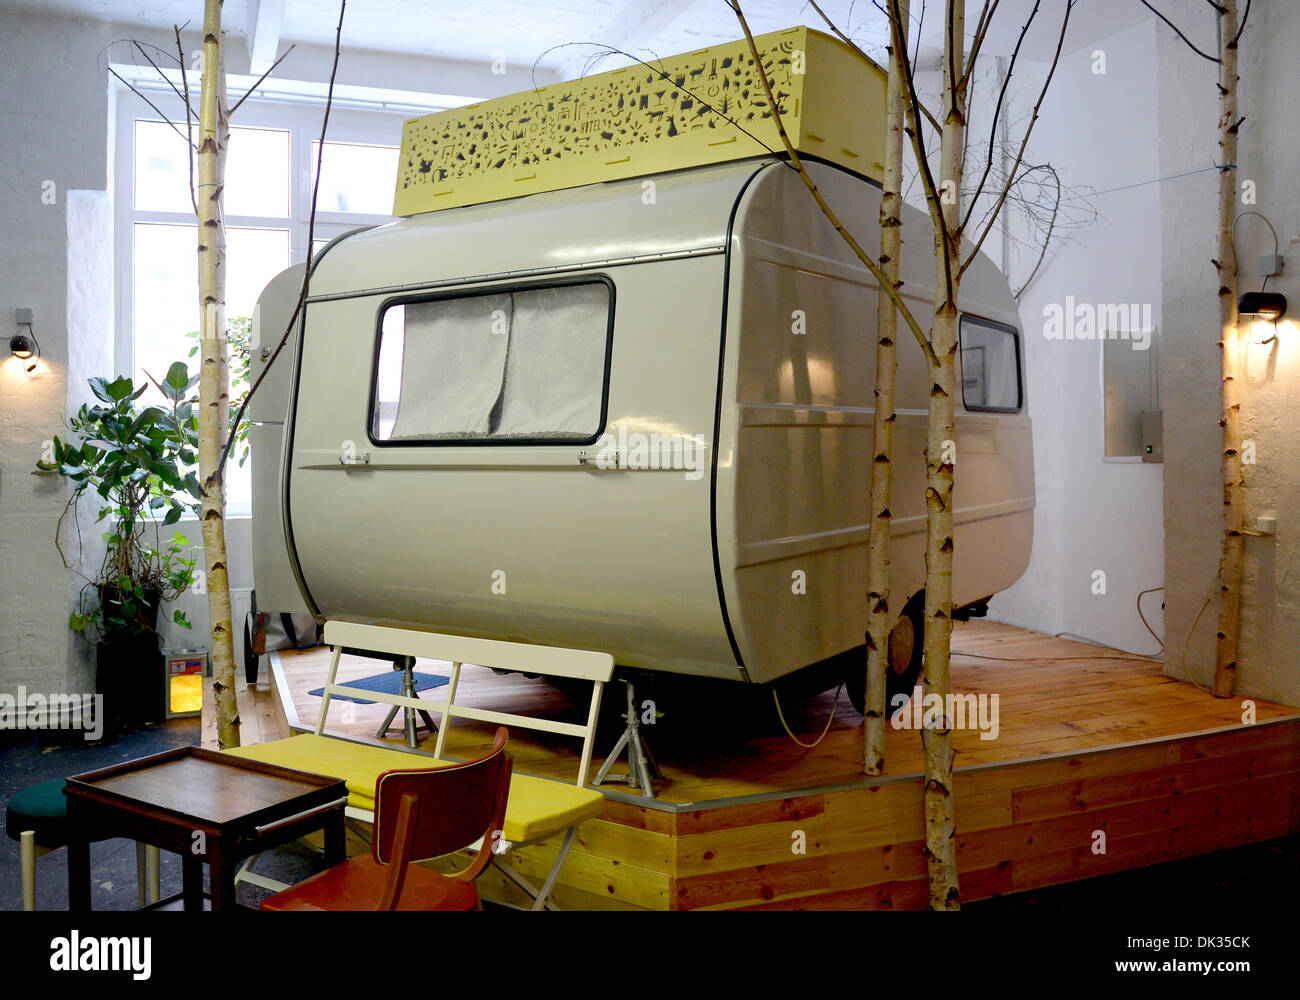 d8b4ddf645 The camping van  Little sister  is pictured in the hotel  Huettenpalast)  (lit hut palace) in Berlin